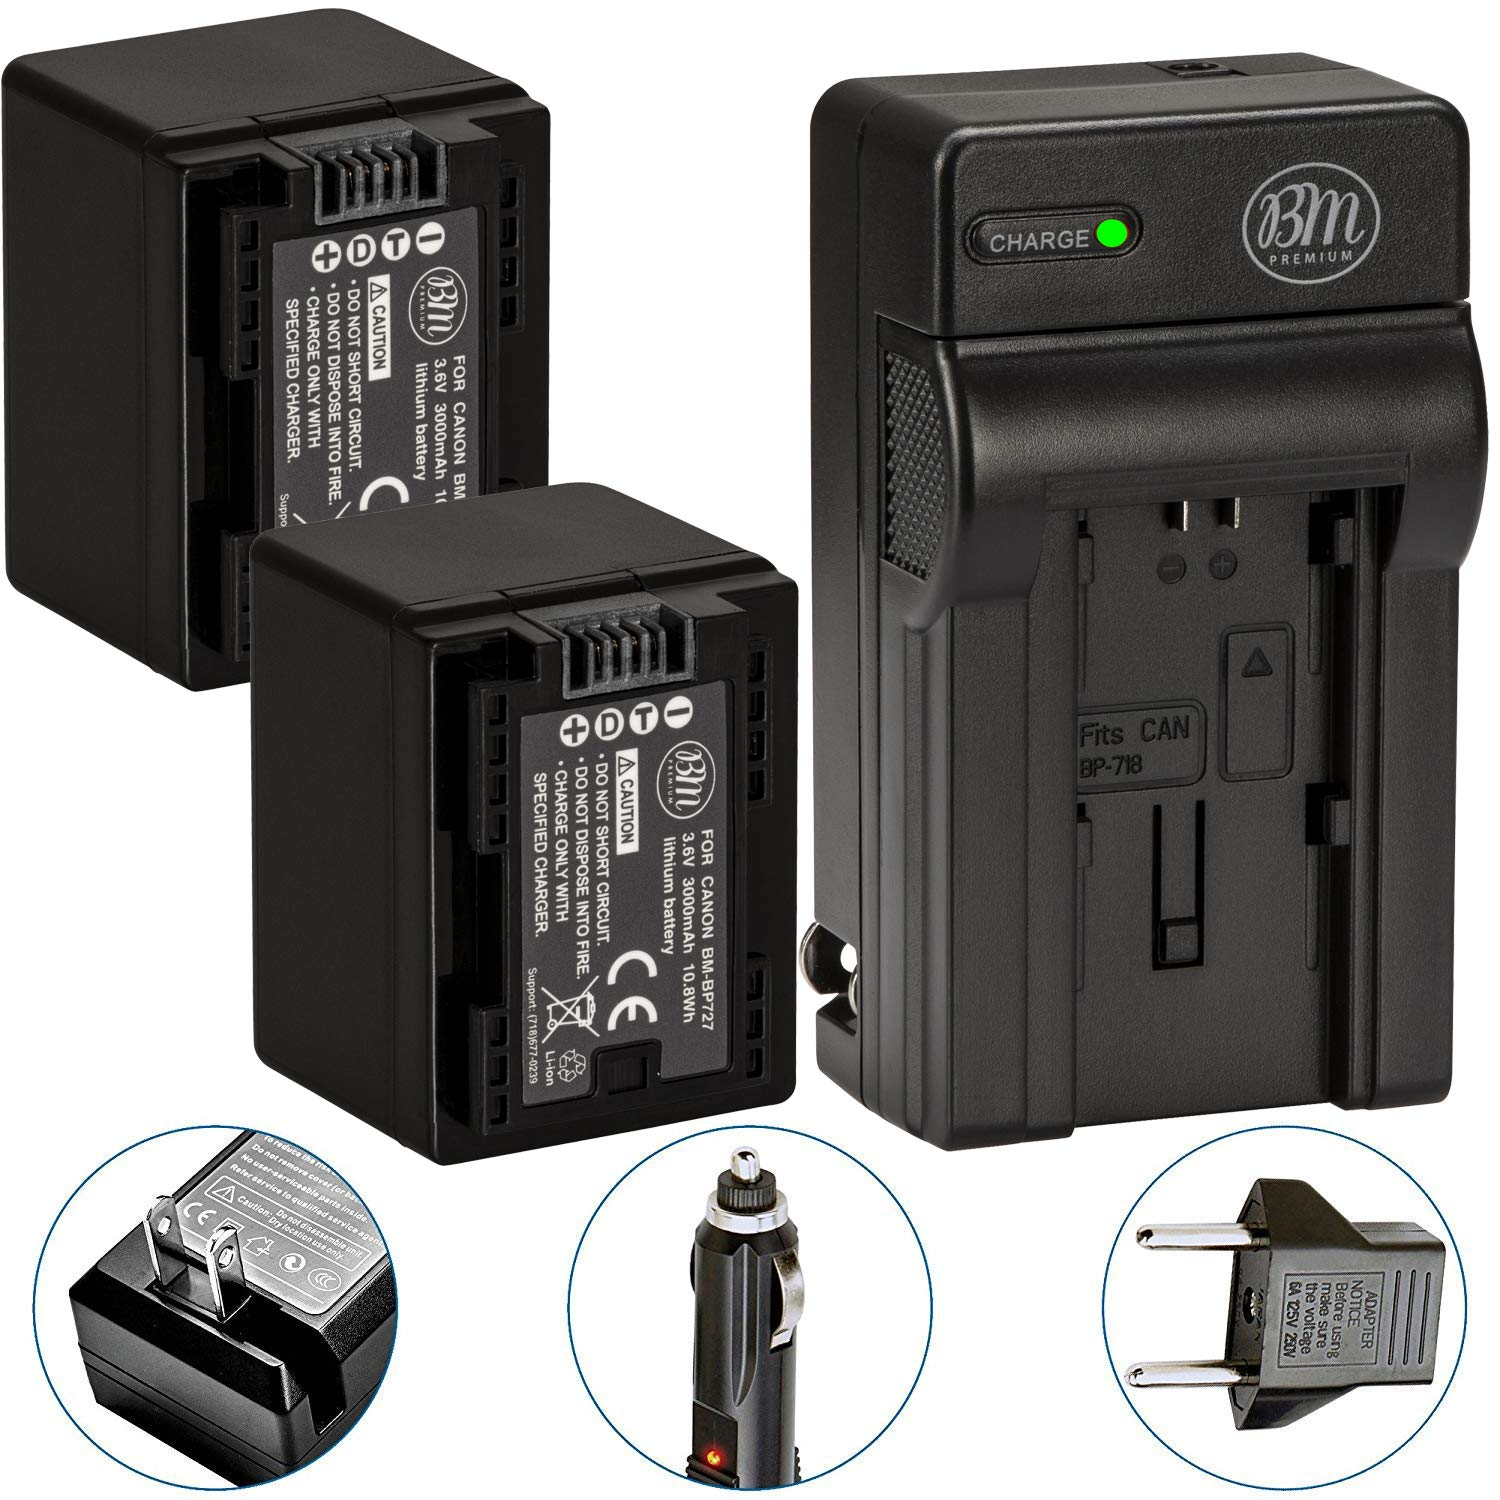 BM Premium Fully Decoded 2-Pack of BP-727 Batteries and Battery Charger for Canon Vixia HF R70, HF R72, HF R700 HFM50, HFM52, HFM500, HFR30, HFR32, HFR300, HFR40, HFR42, HFR400, HFR50, HFR52, HFR500, HFR60, HFR62, HFR600 Camcorder